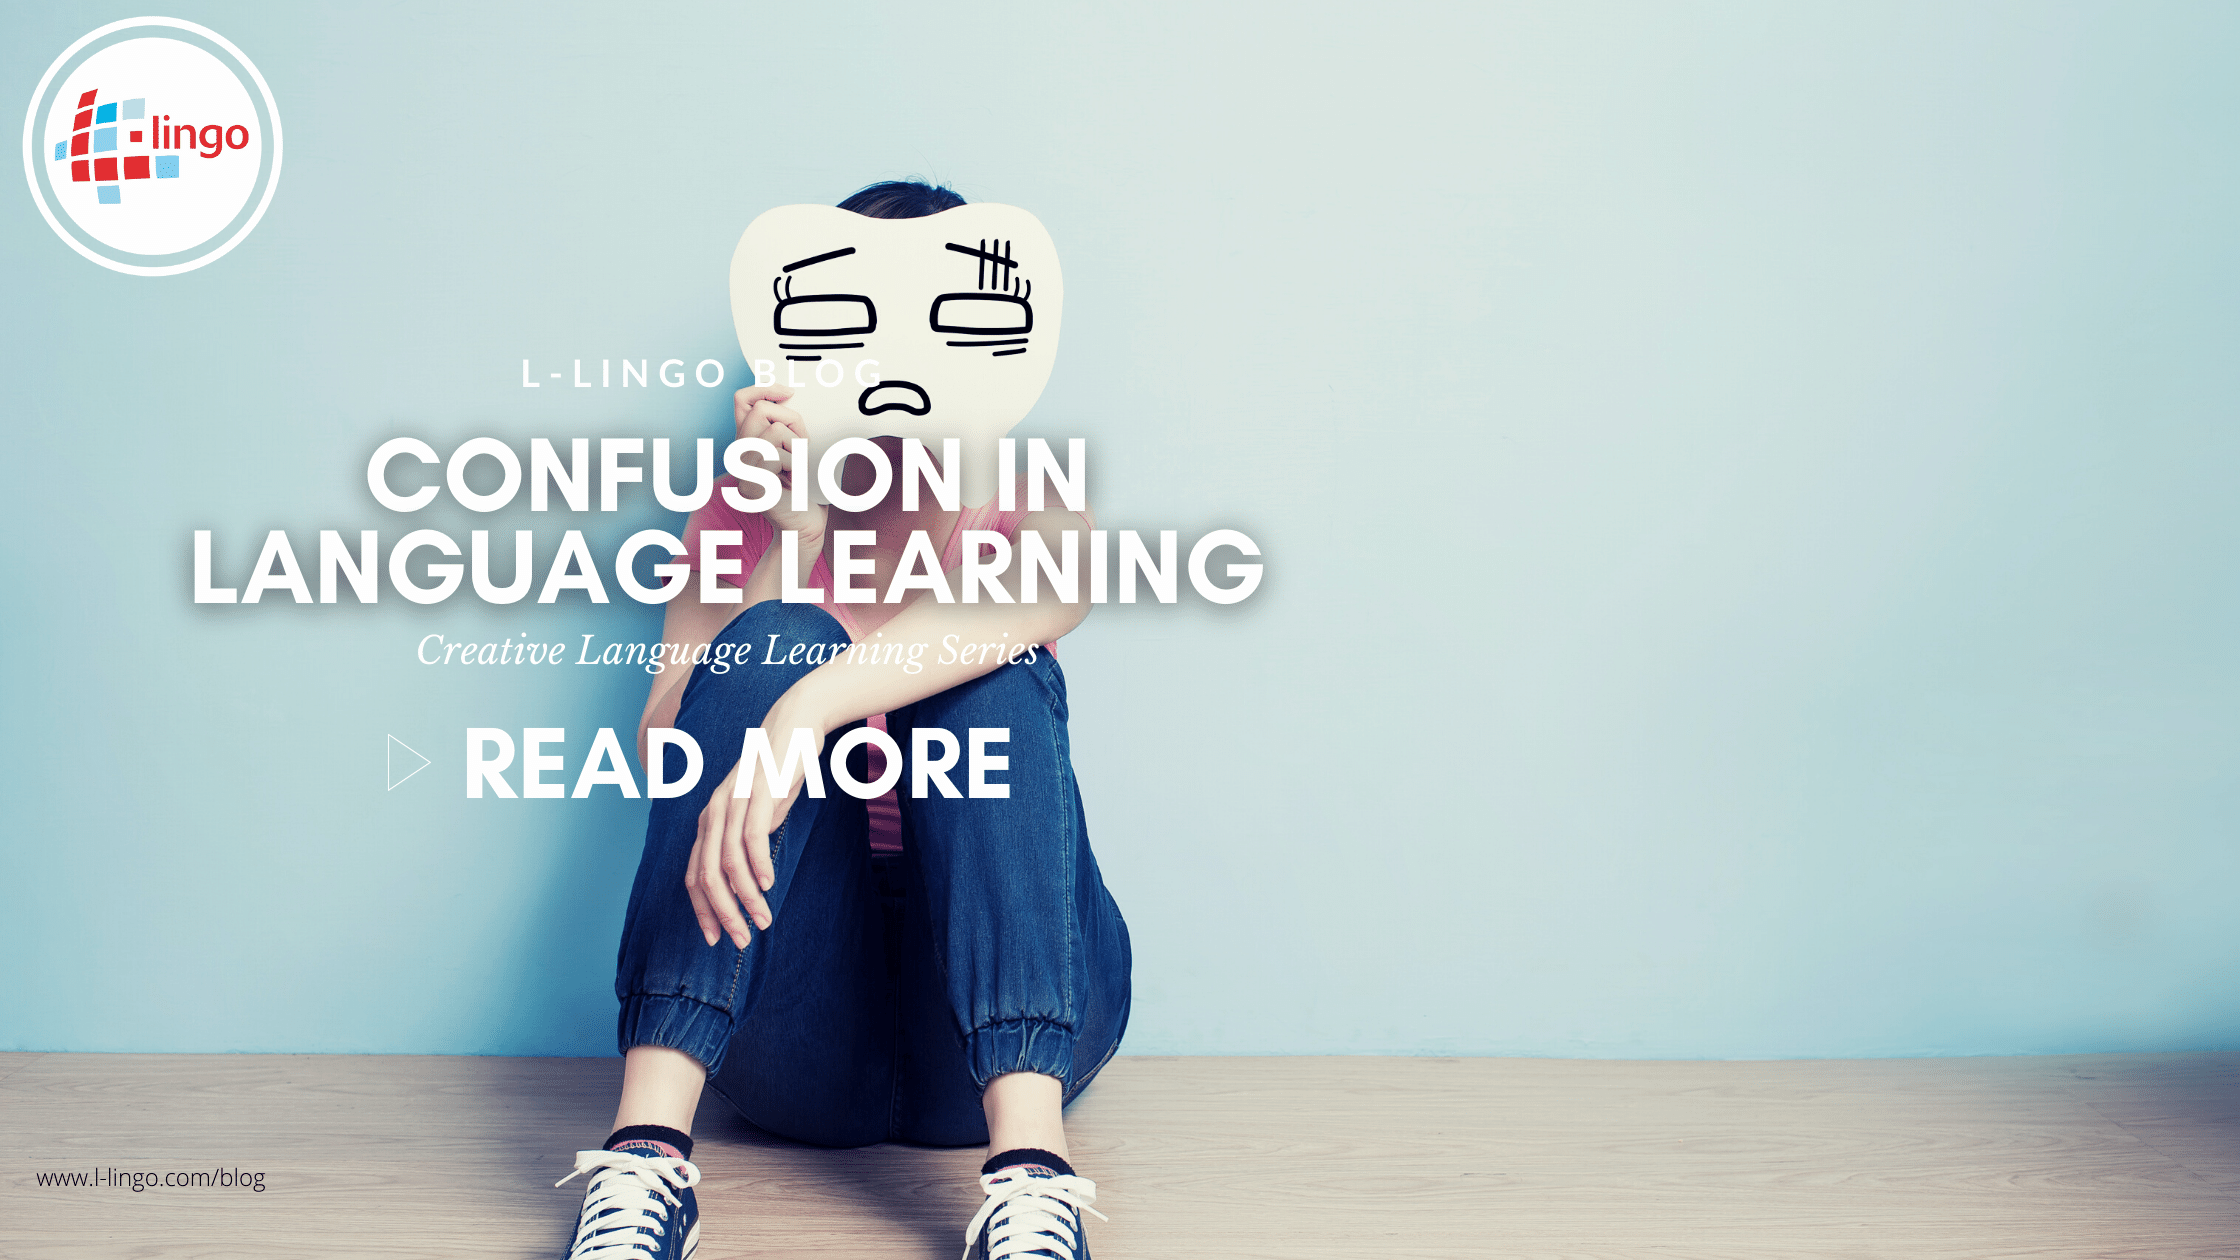 CONFUSION IN LANGUAGE LEARNING l-lingo blog